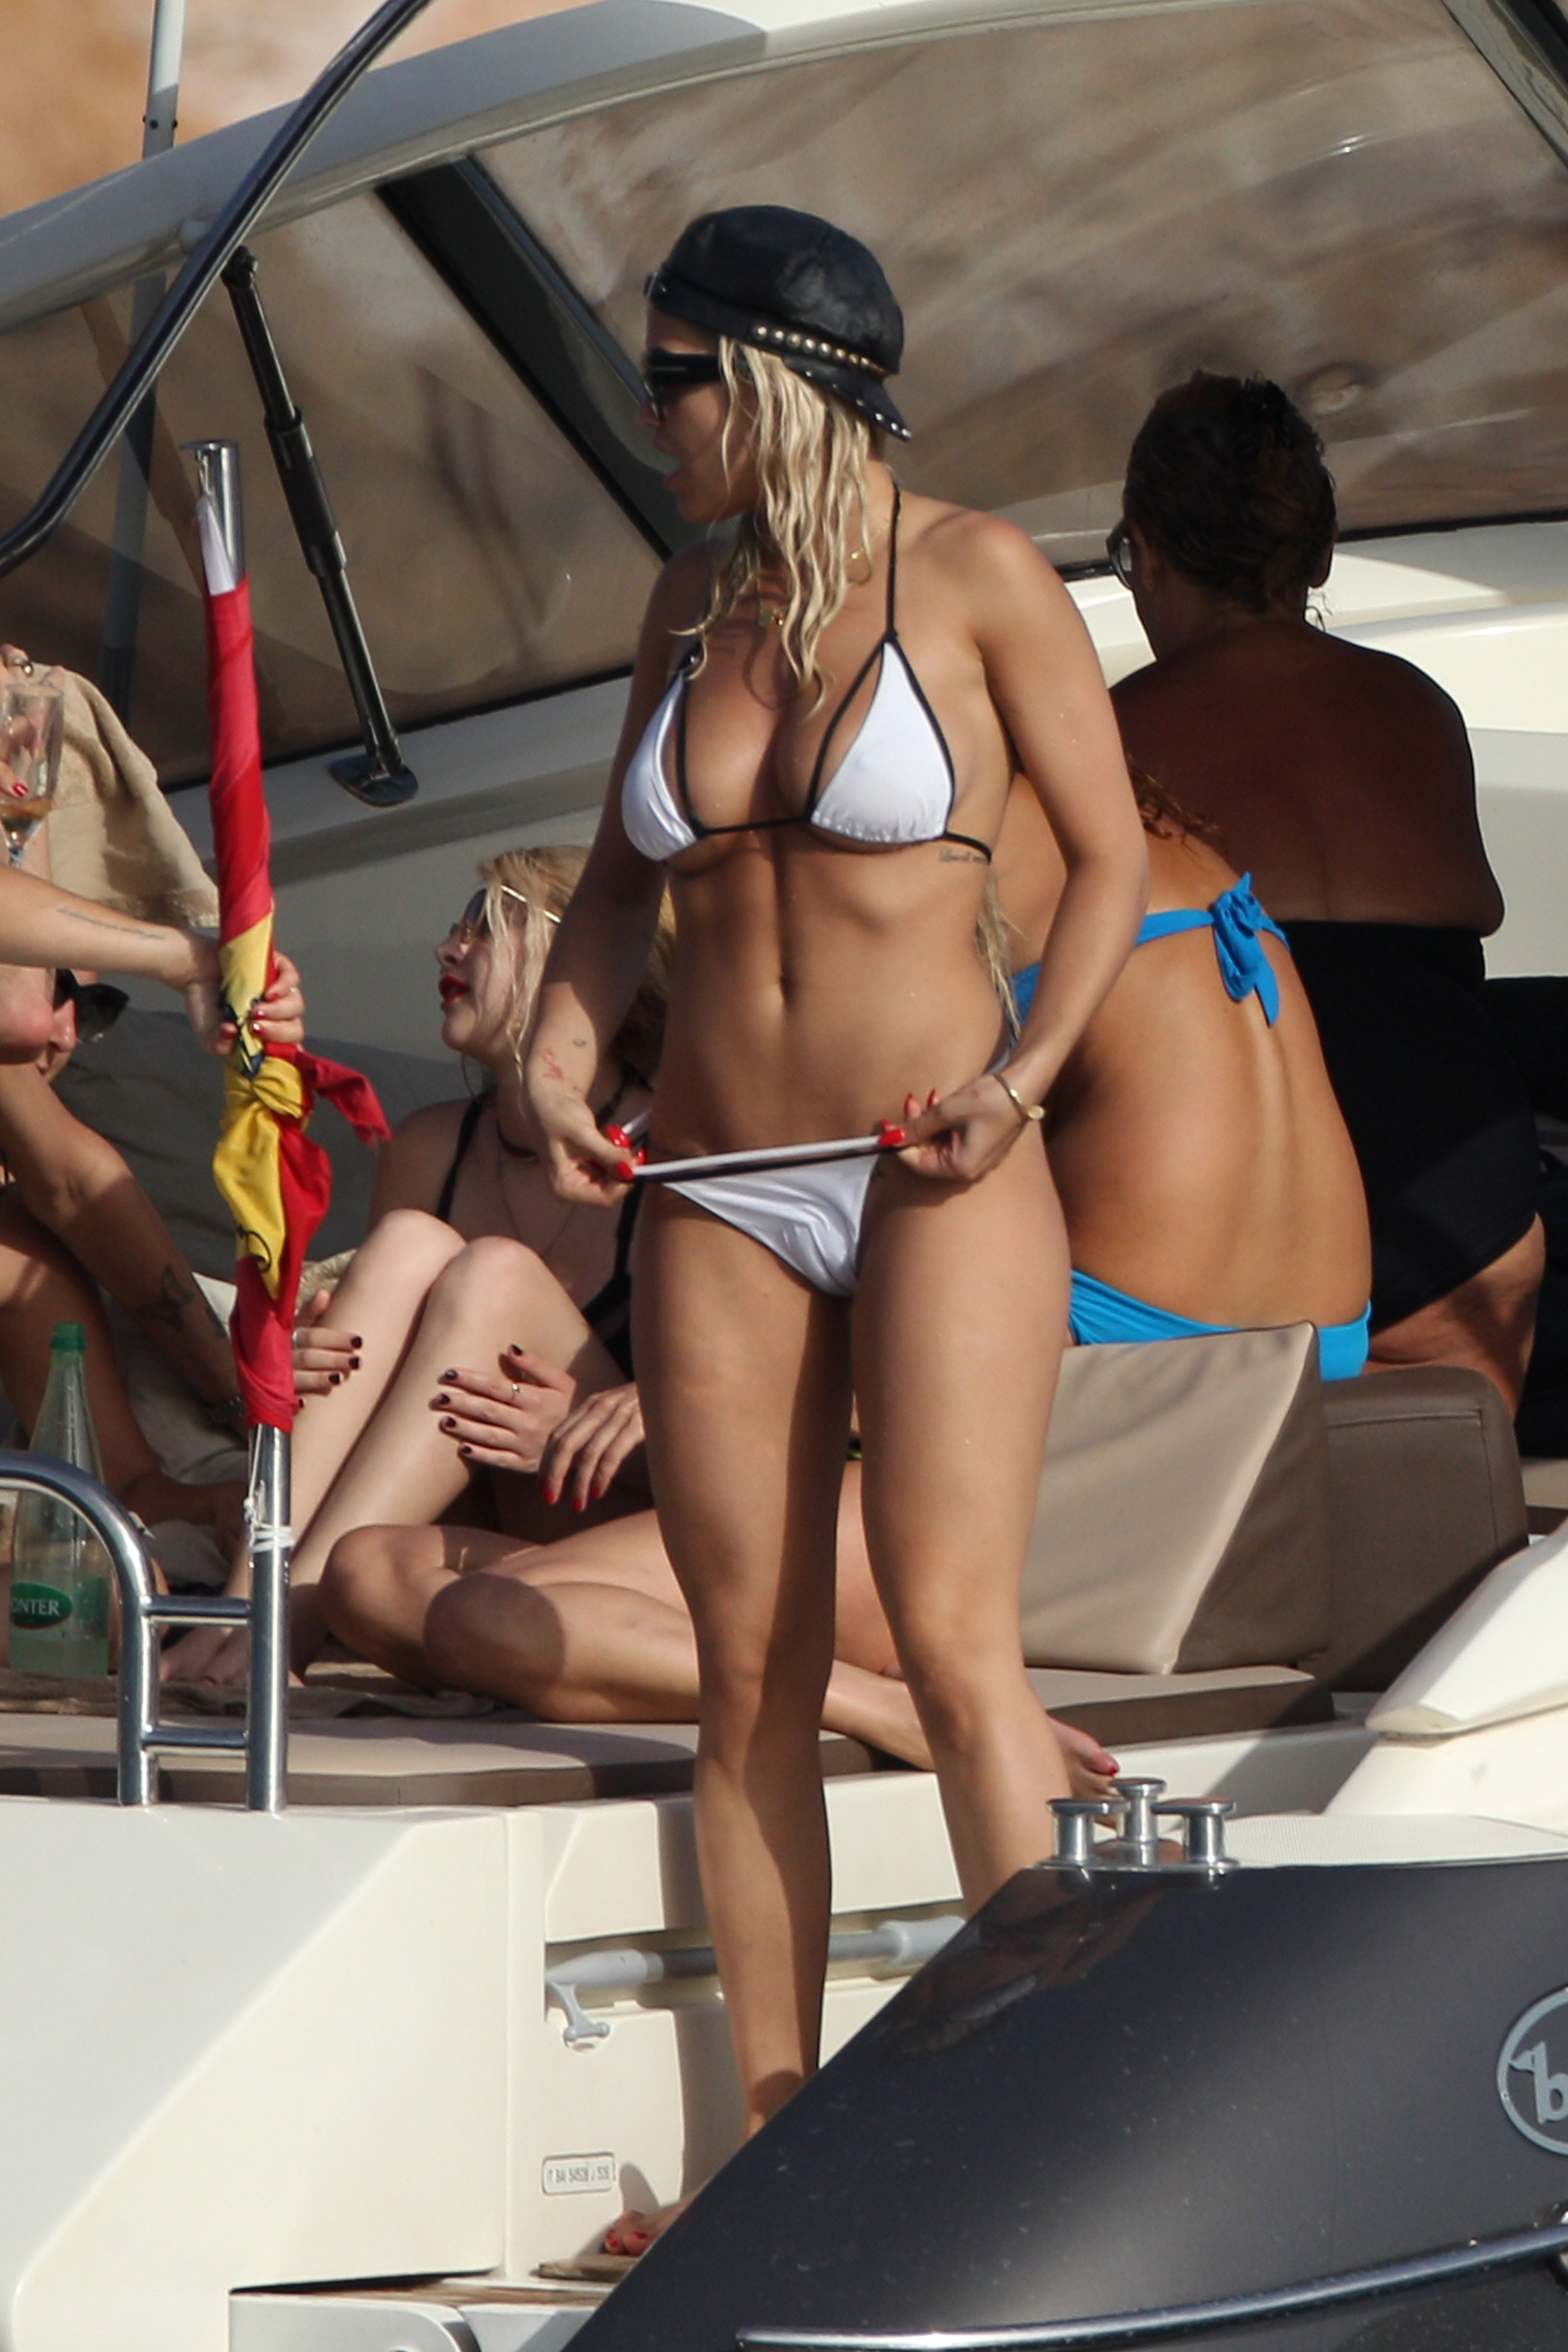 Legs open raunchy bikini pictures yes stunning